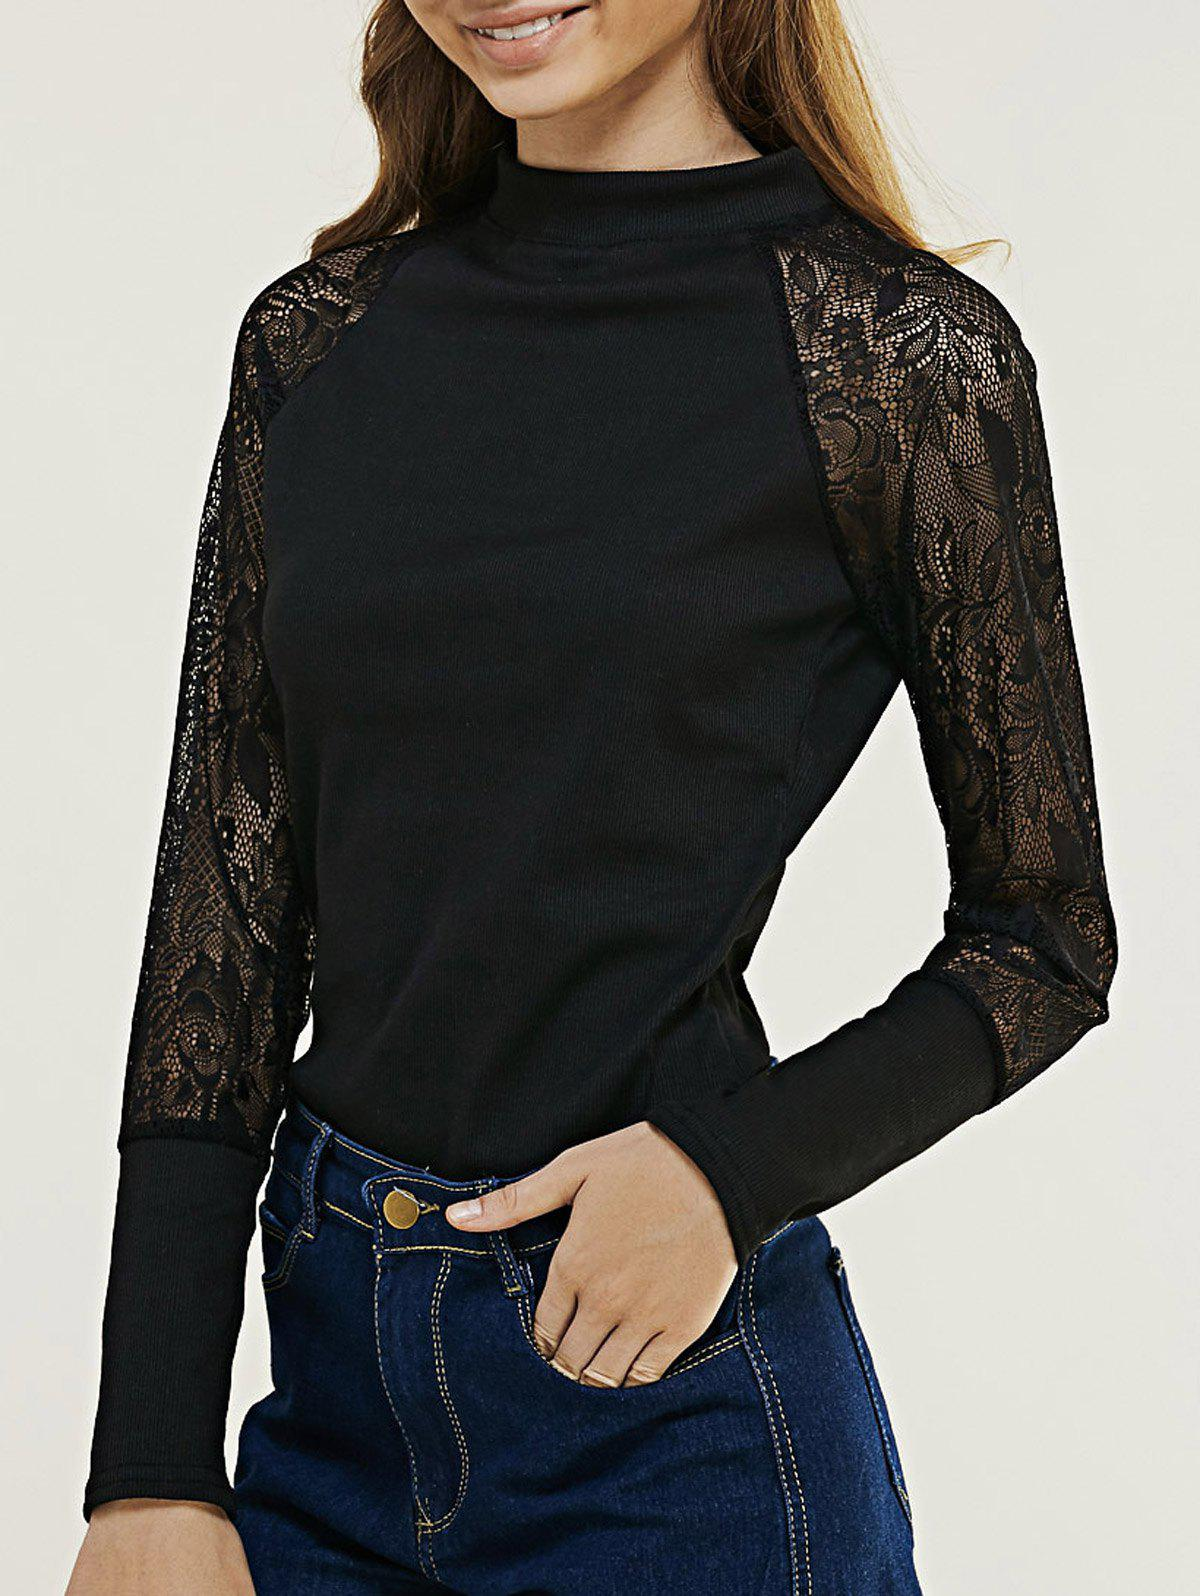 Stylish Raglan Sleeve Lace Top For Women